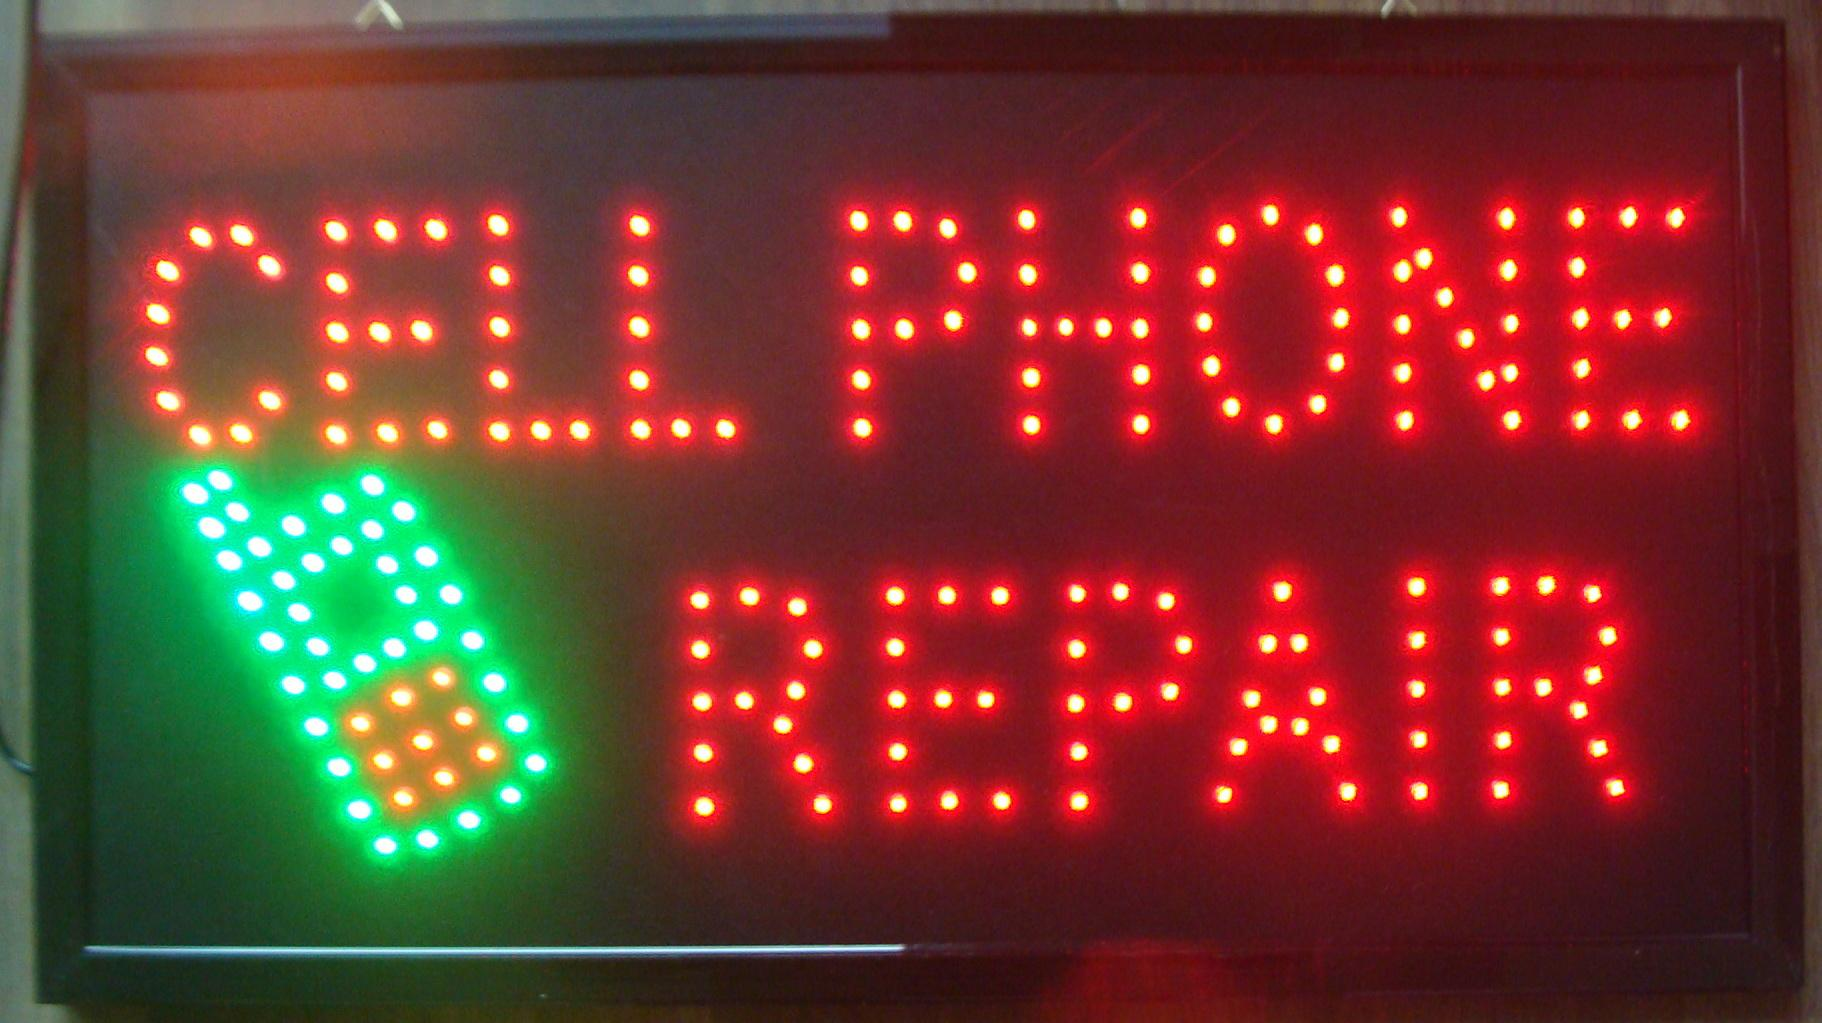 Security & Protection Open Sign Led Displays Neon Lights Led Animated Open Sign Customers Attractive Sign Store Shop Sign 220v El Products